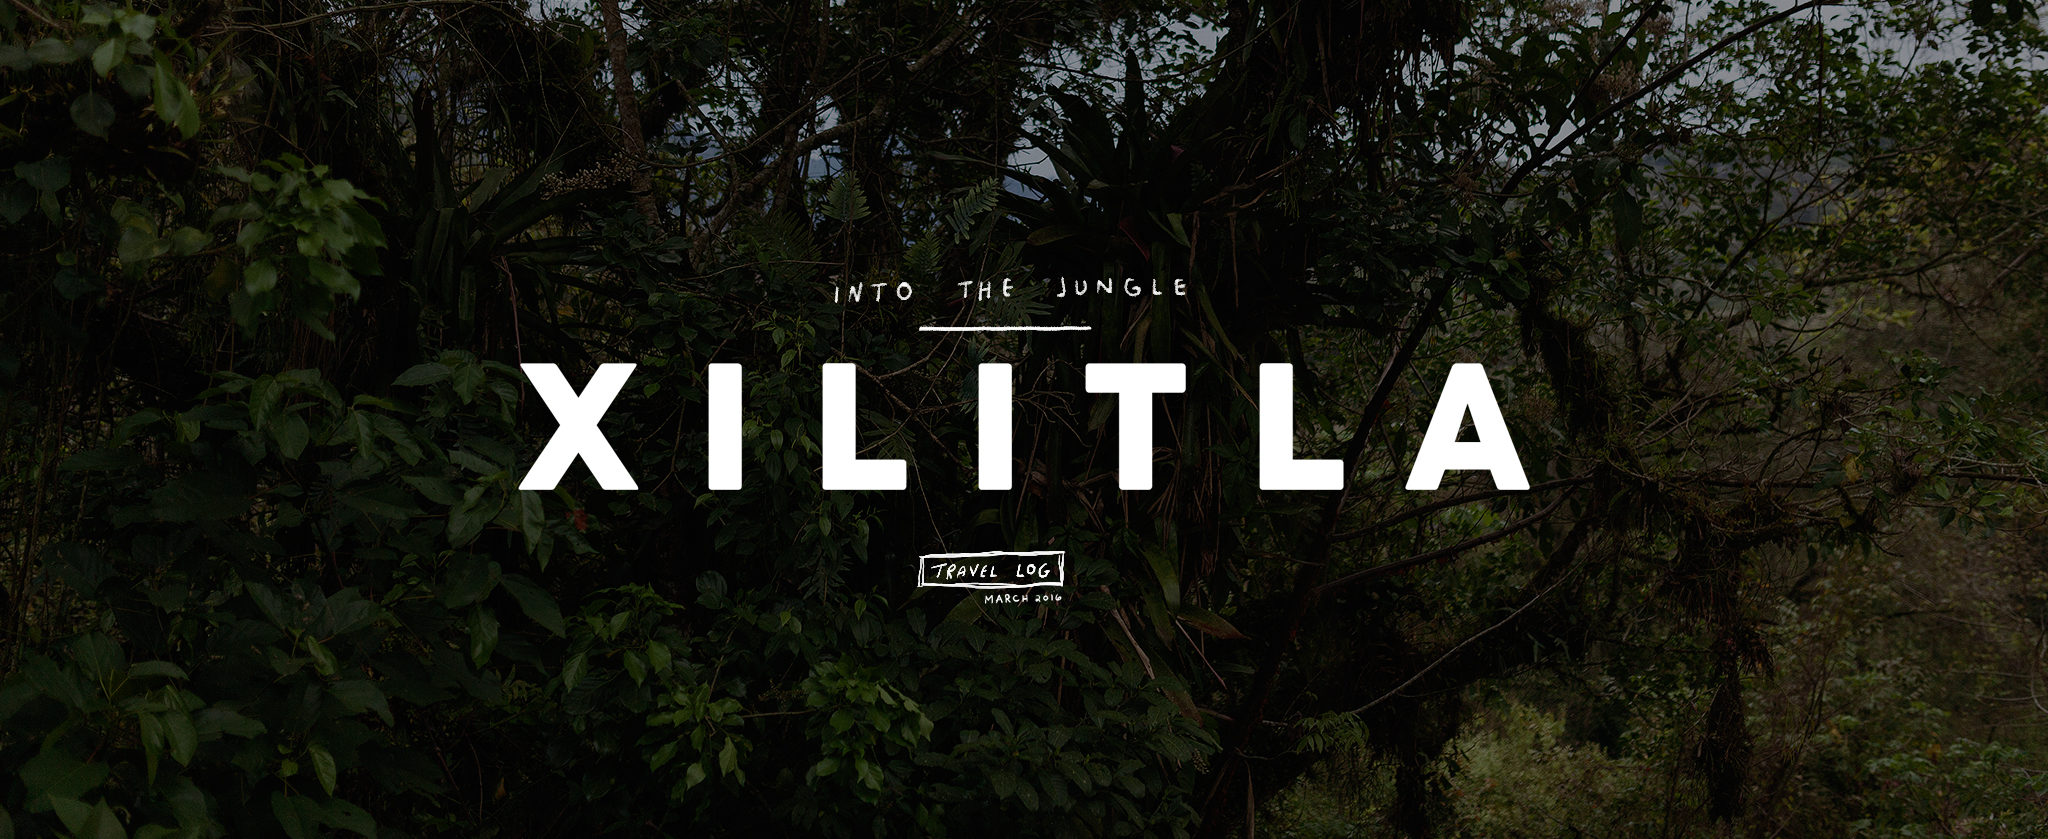 Into the Jungle: Xilitla